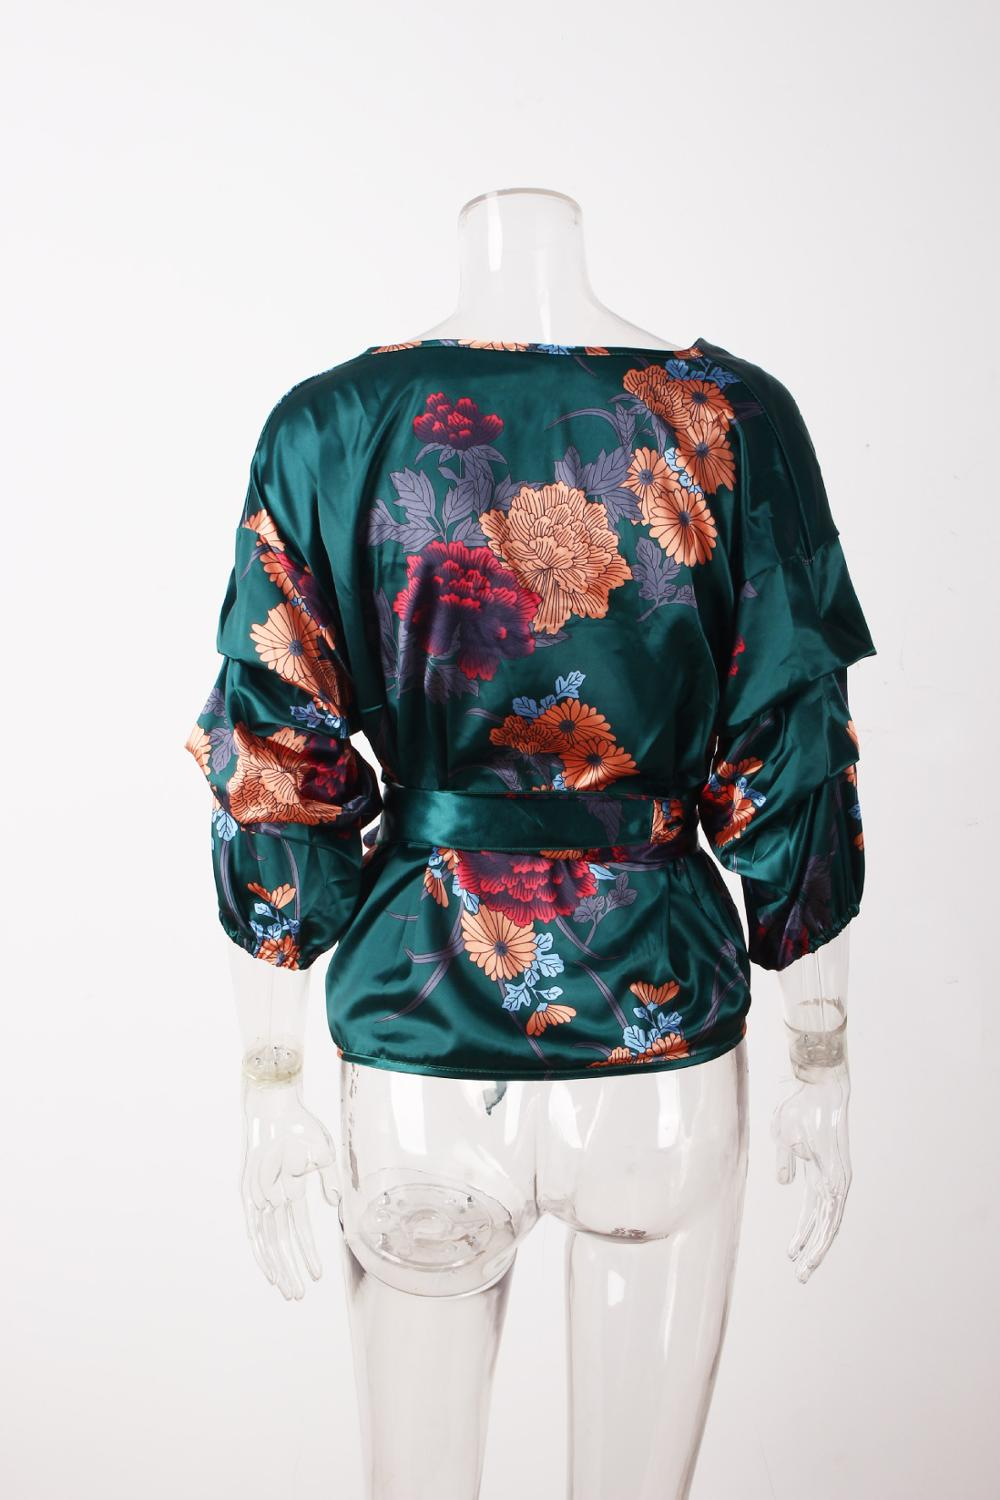 LOSSKY Women V-Neck Sexy Boho Blouse Print Floral Bandages Long Sleeve Blouse Bohemia Ladies Top Shirts Blouses Summer 2018 24